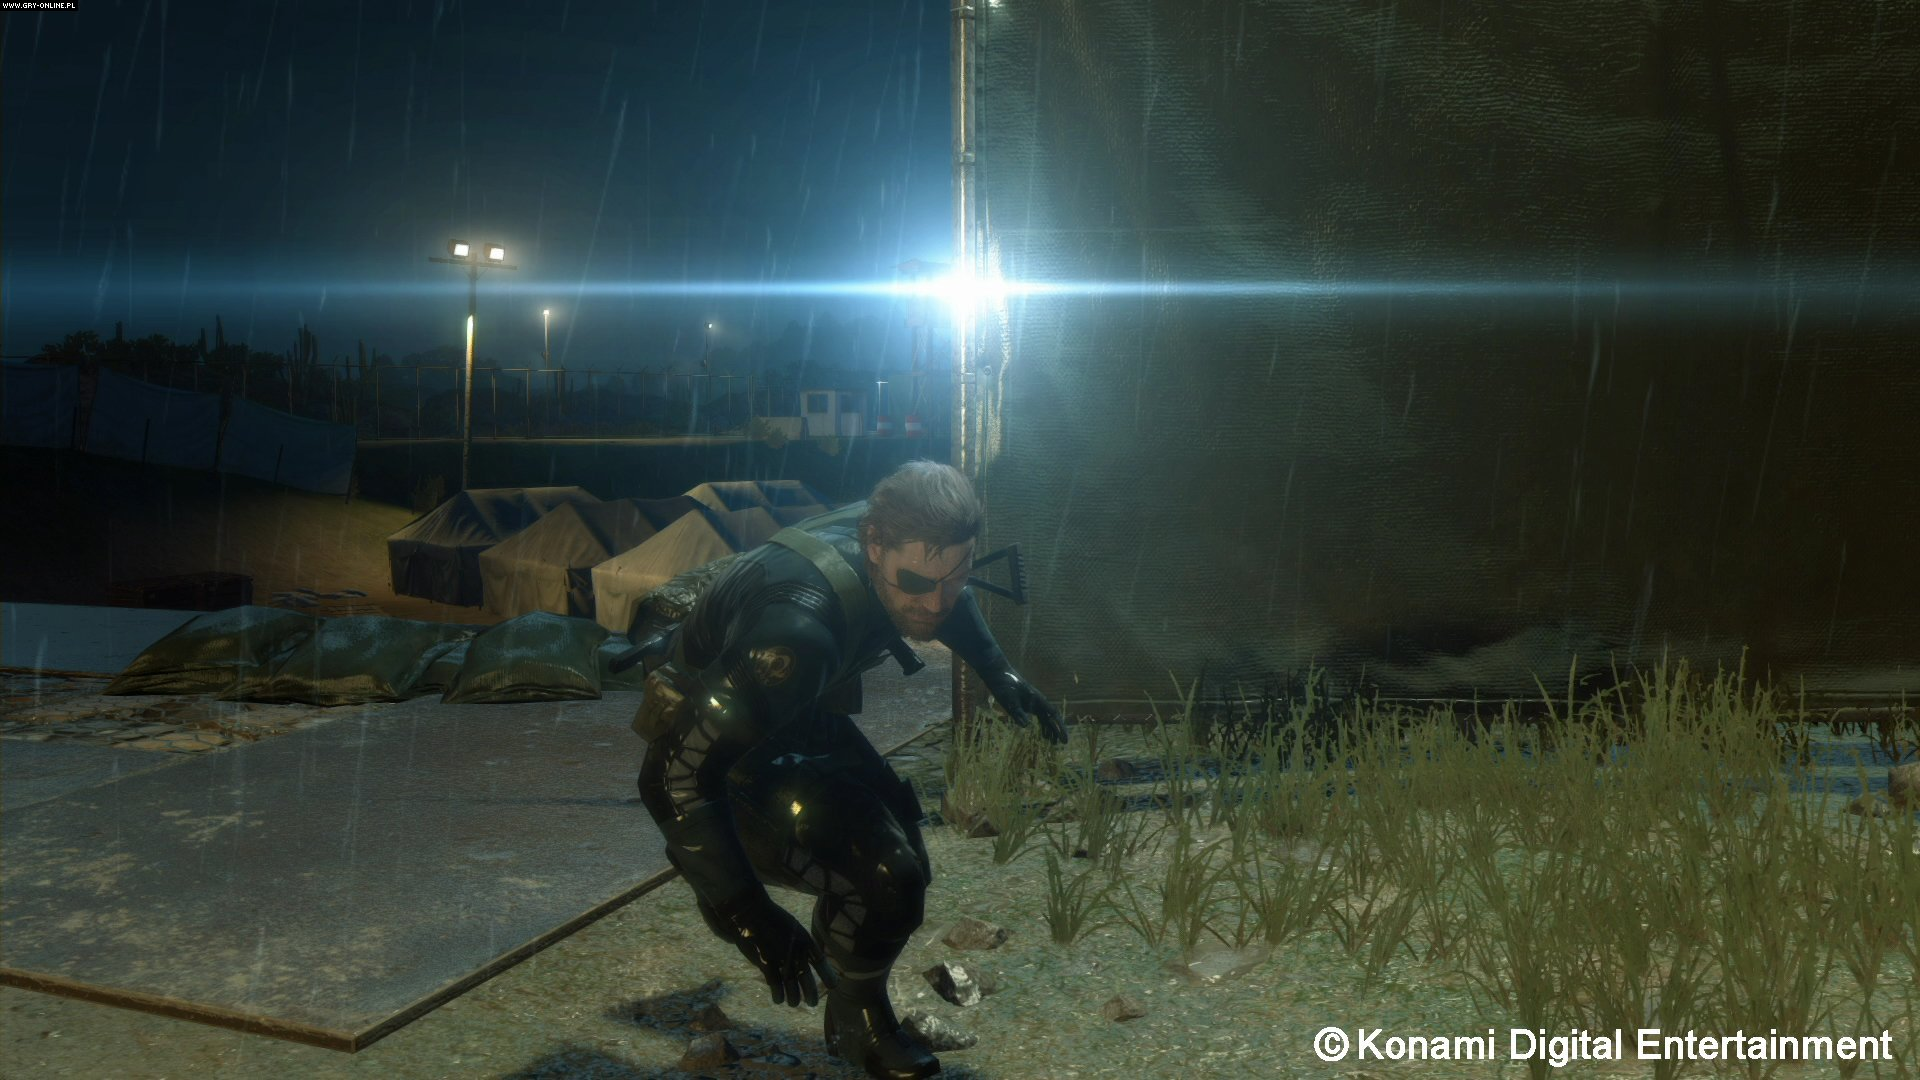 Metal Gear Solid V: Ground Zeroes X360, PS3, XONE, PS4 Gry Screen 8/28, Konami